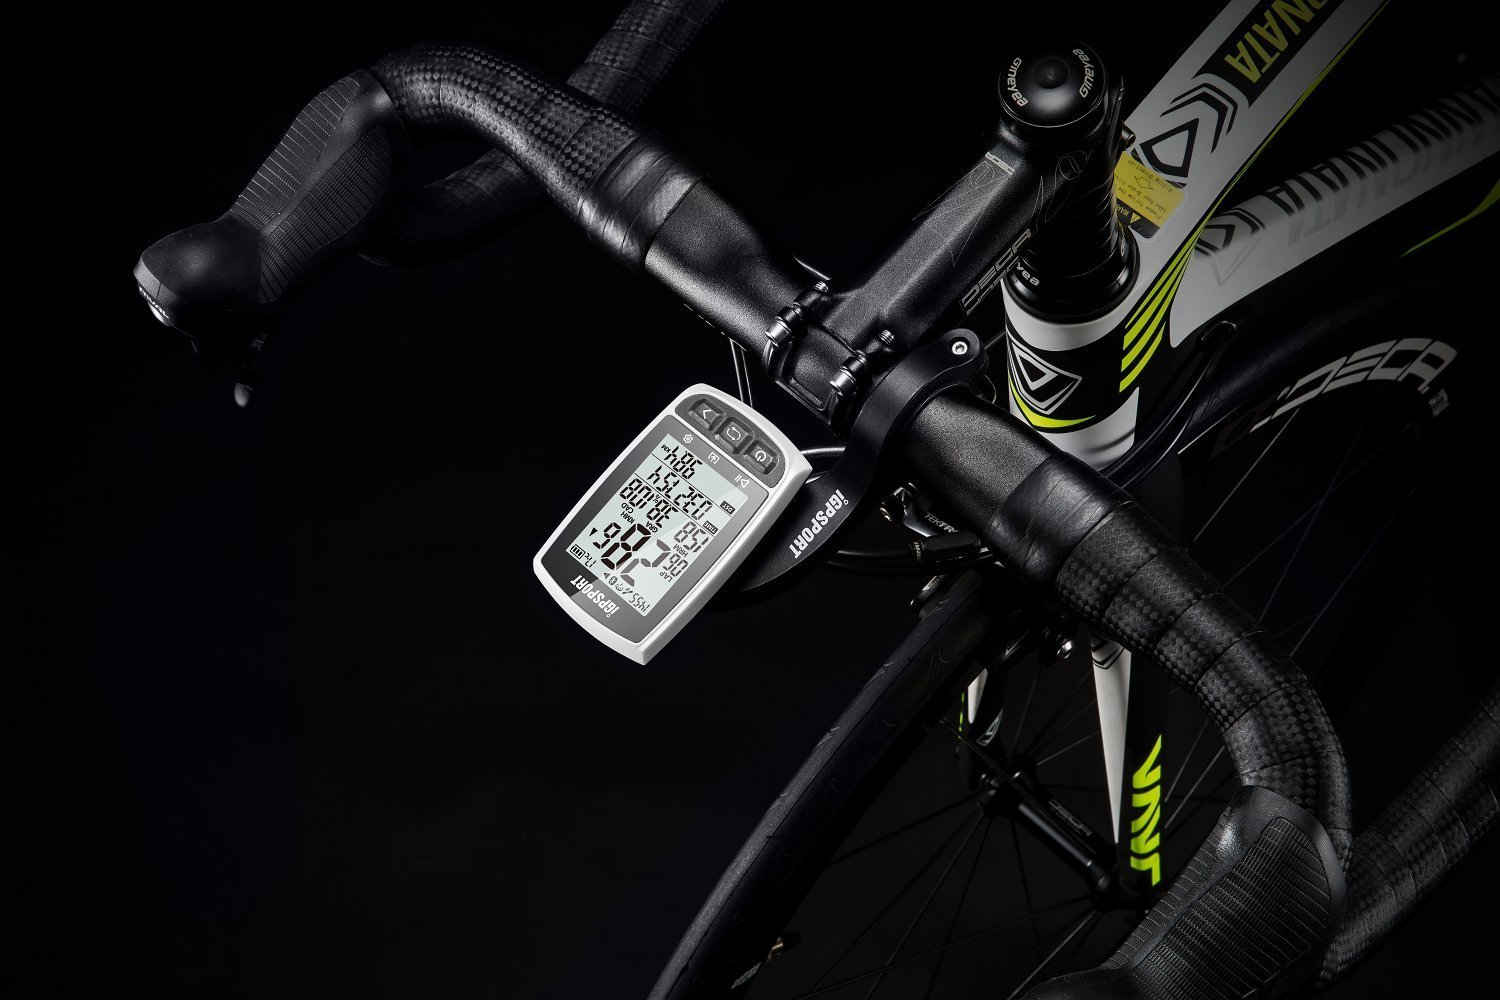 White Function Large Screen Long Endurance Support Heart Rate Monitor Speed Cadence Sensor Connection iGPSPORT iGS50E GPS Cycle Computer with ANT